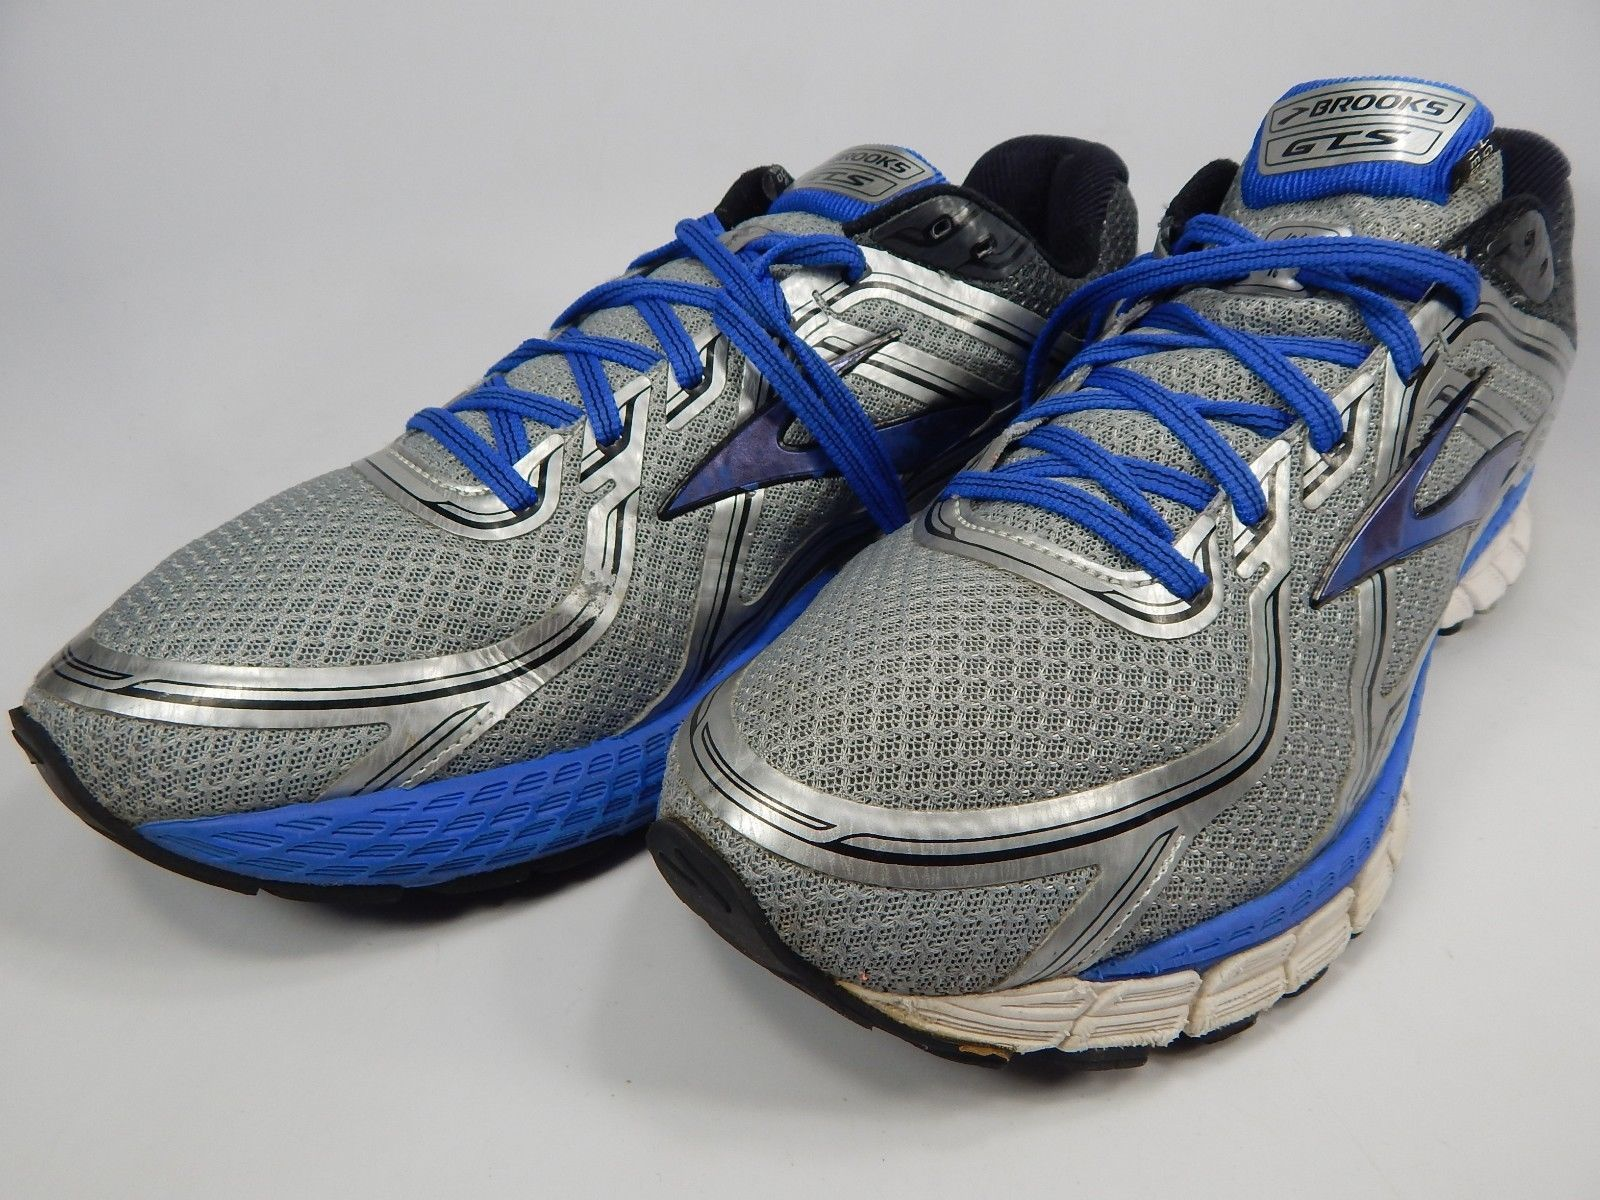 Brooks GTS 16 Size US 14 M (D) EU 48.5 Men's Running Shoes Silver 1102121D181